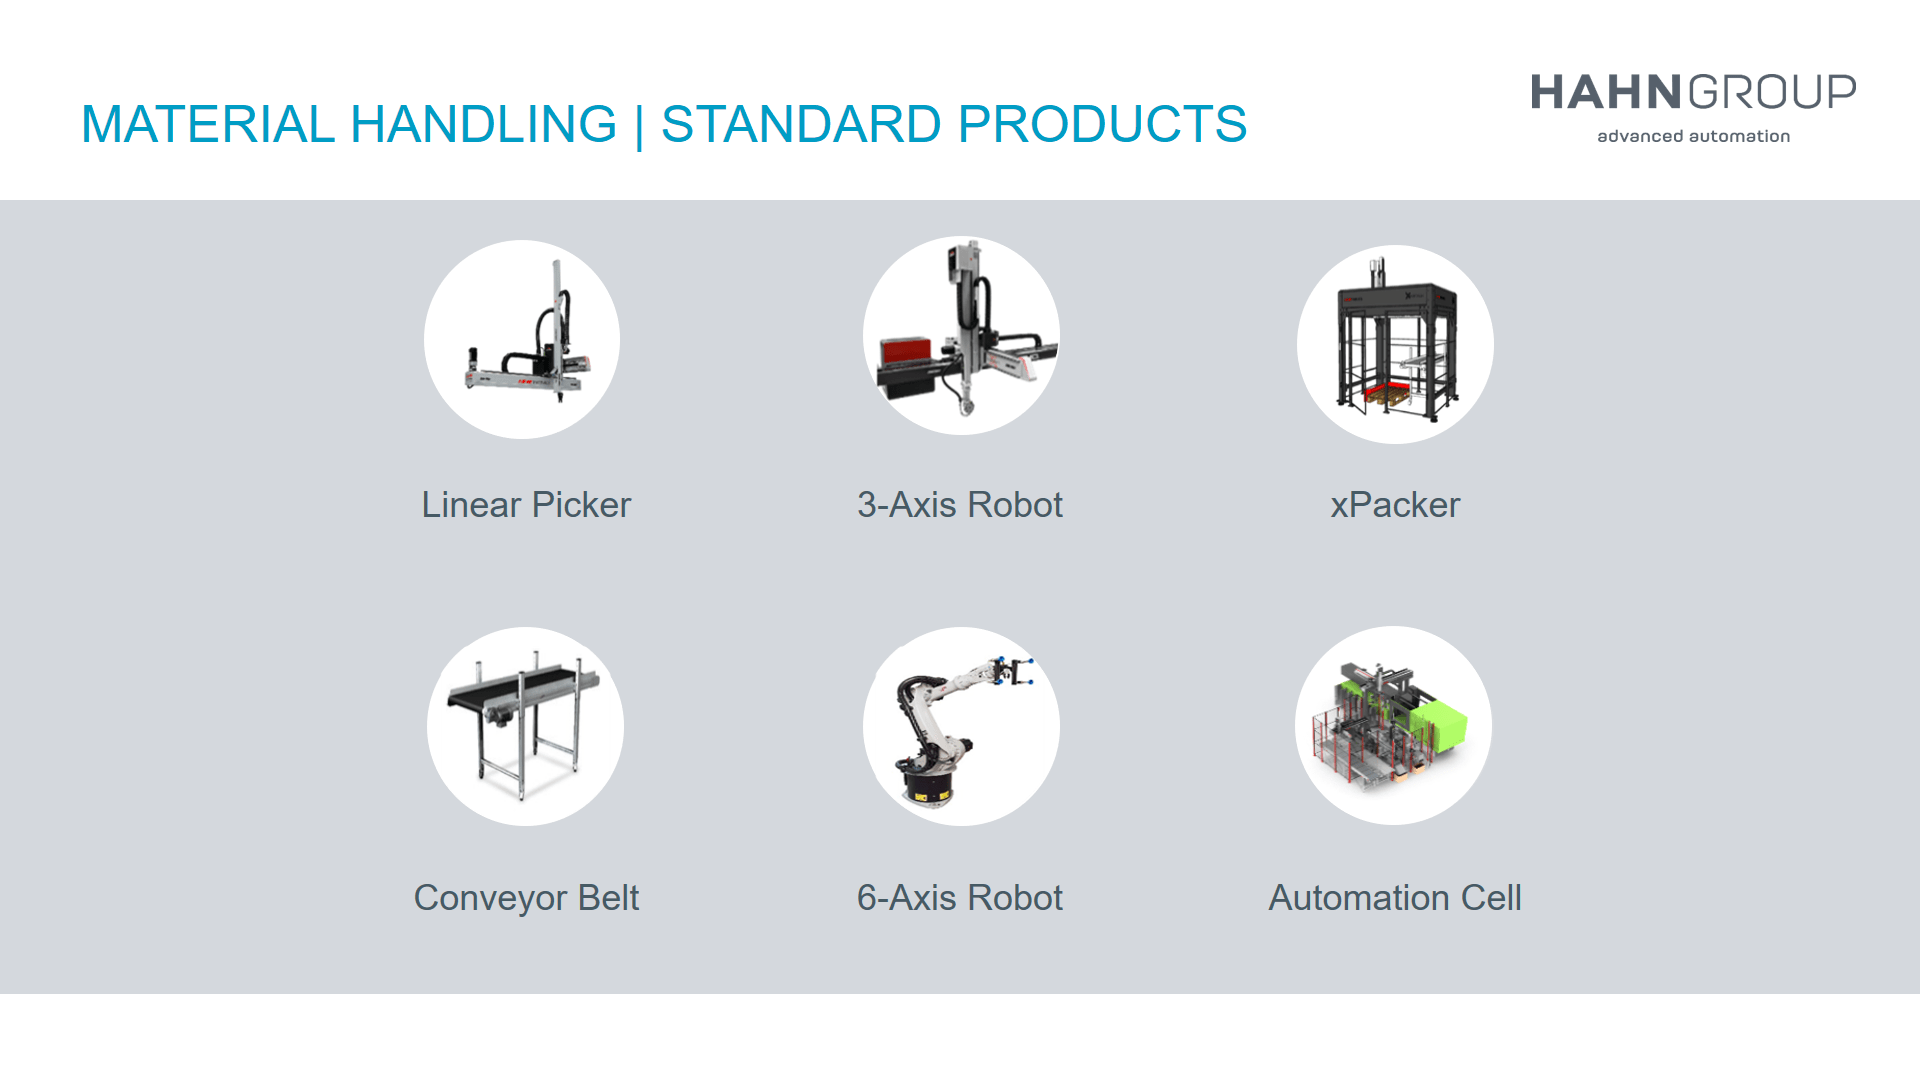 Standard Products of HAHN Group Material Handling